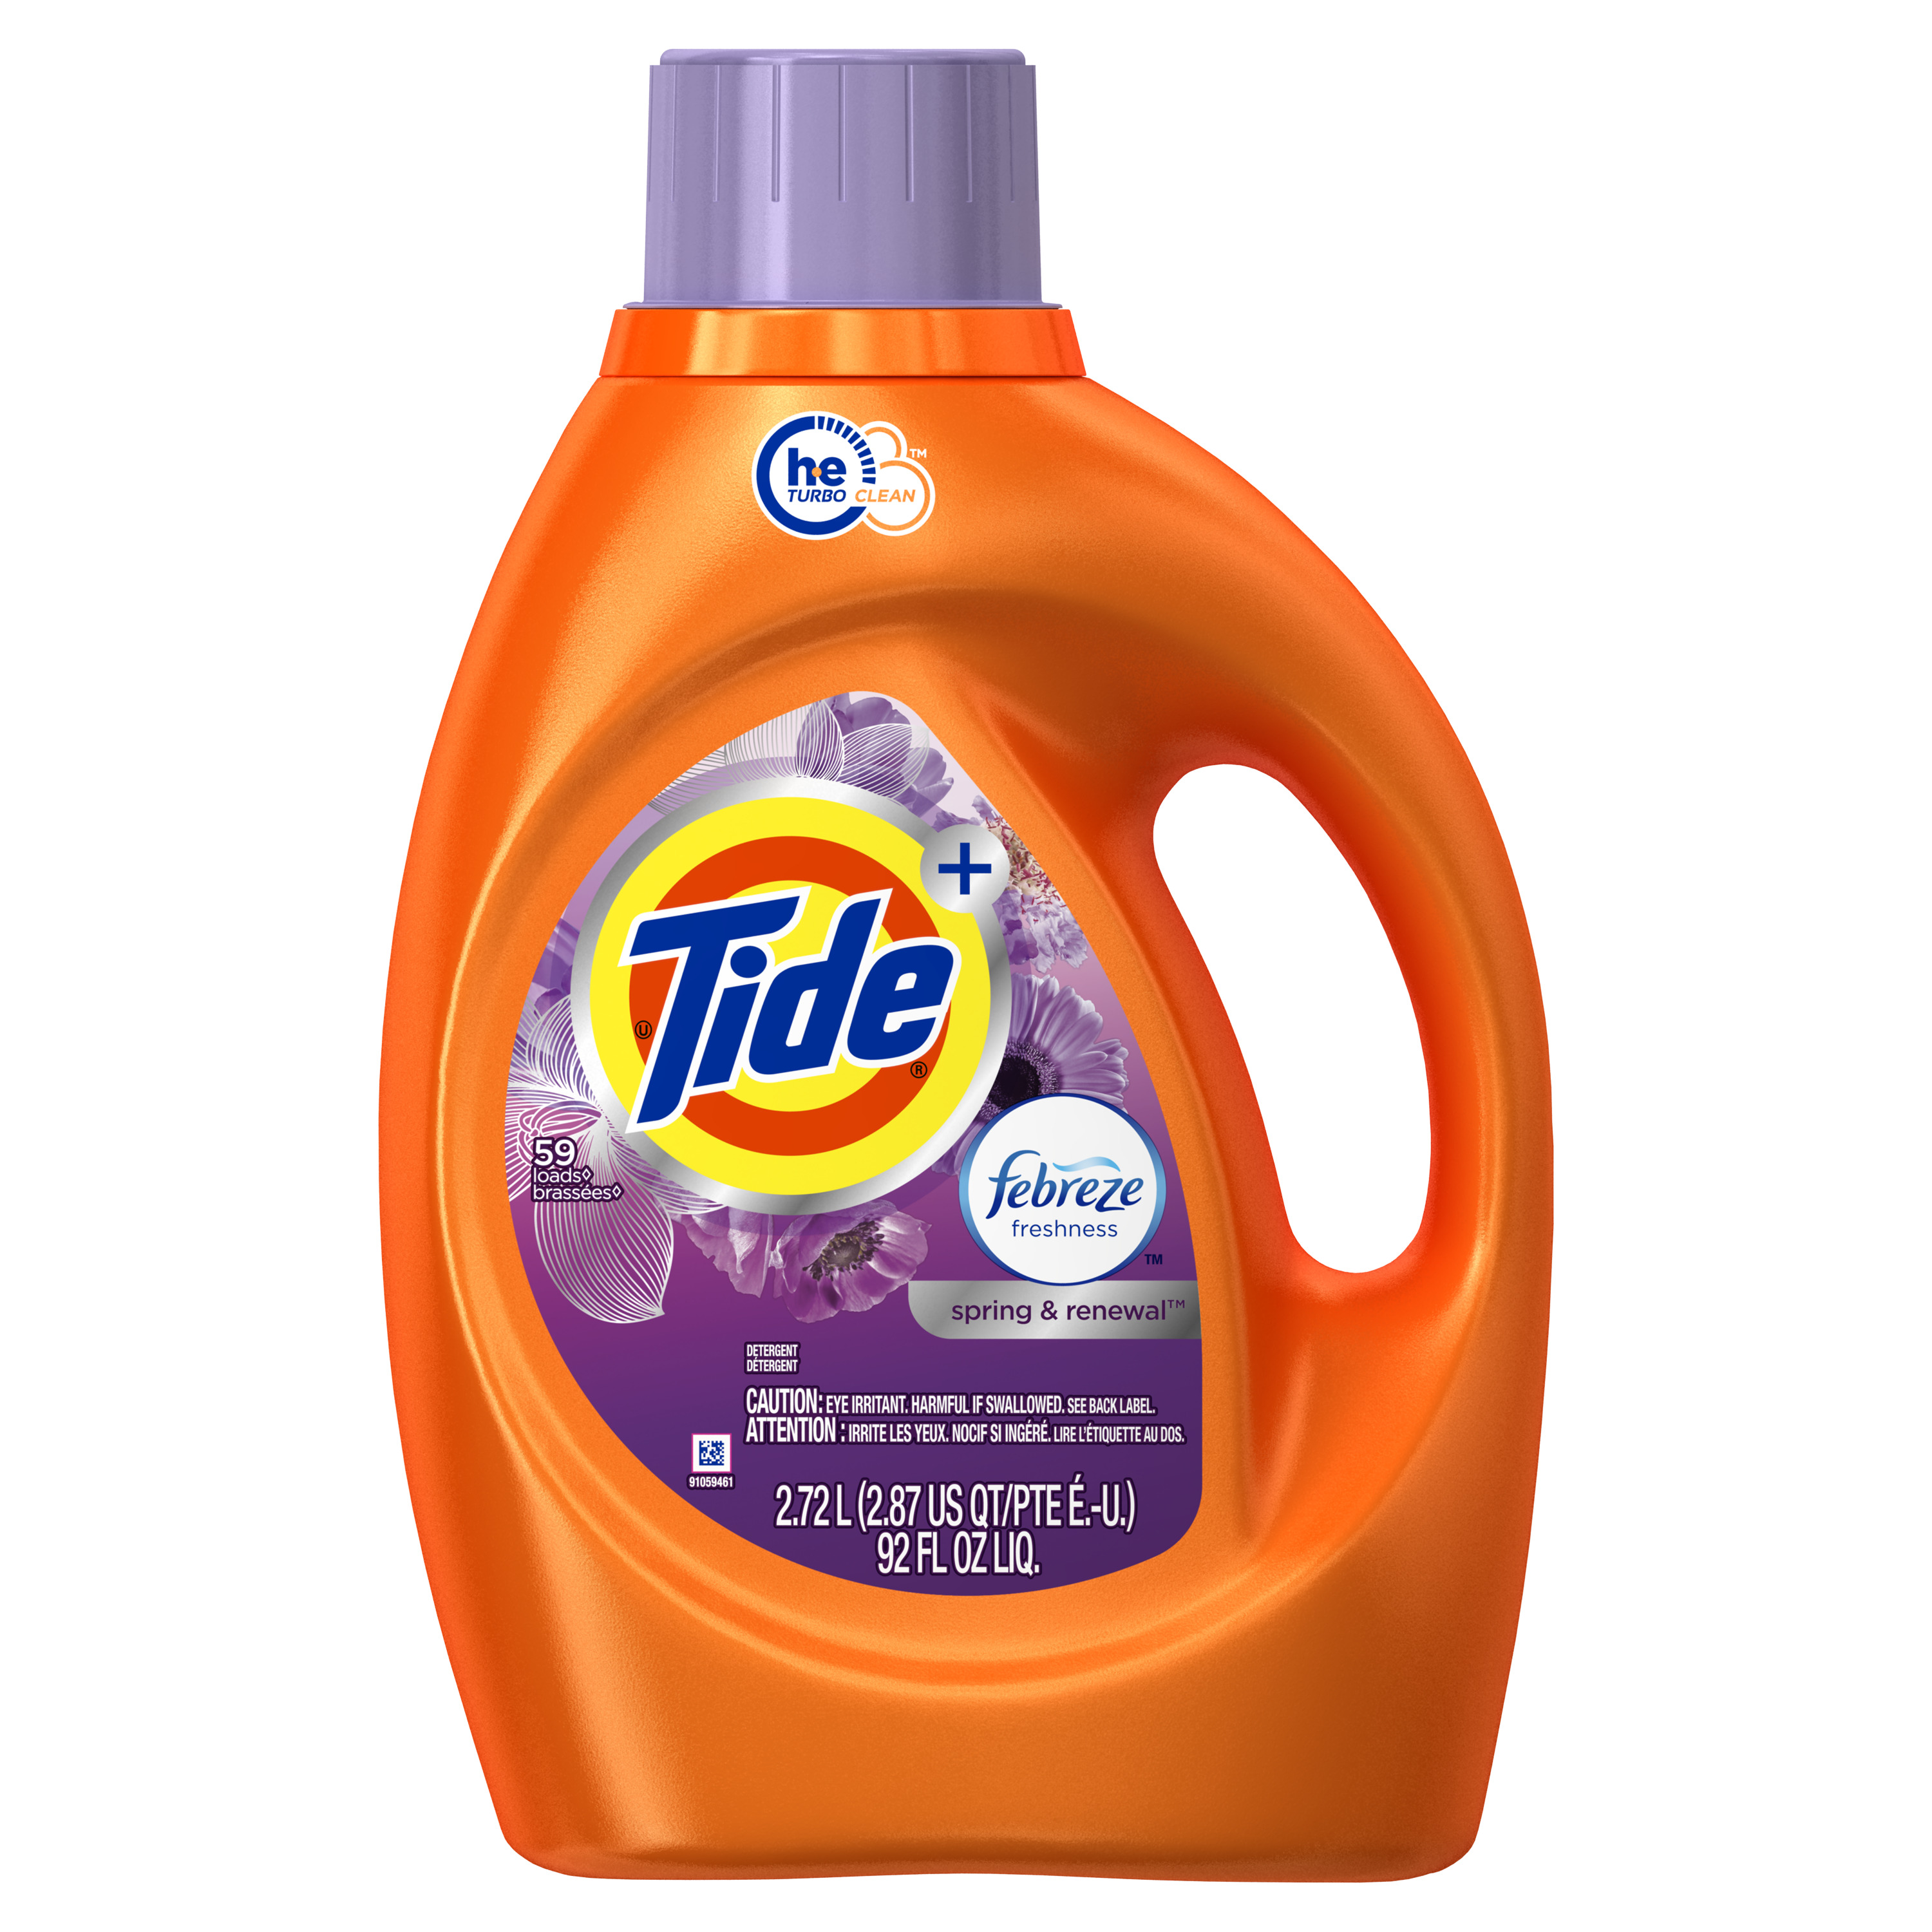 Tide Plus Febreze Freshness, Spring And Renewal Scent, HE Turbo Clean Liquid Laundry Detergent, 92 oz, 59 loads